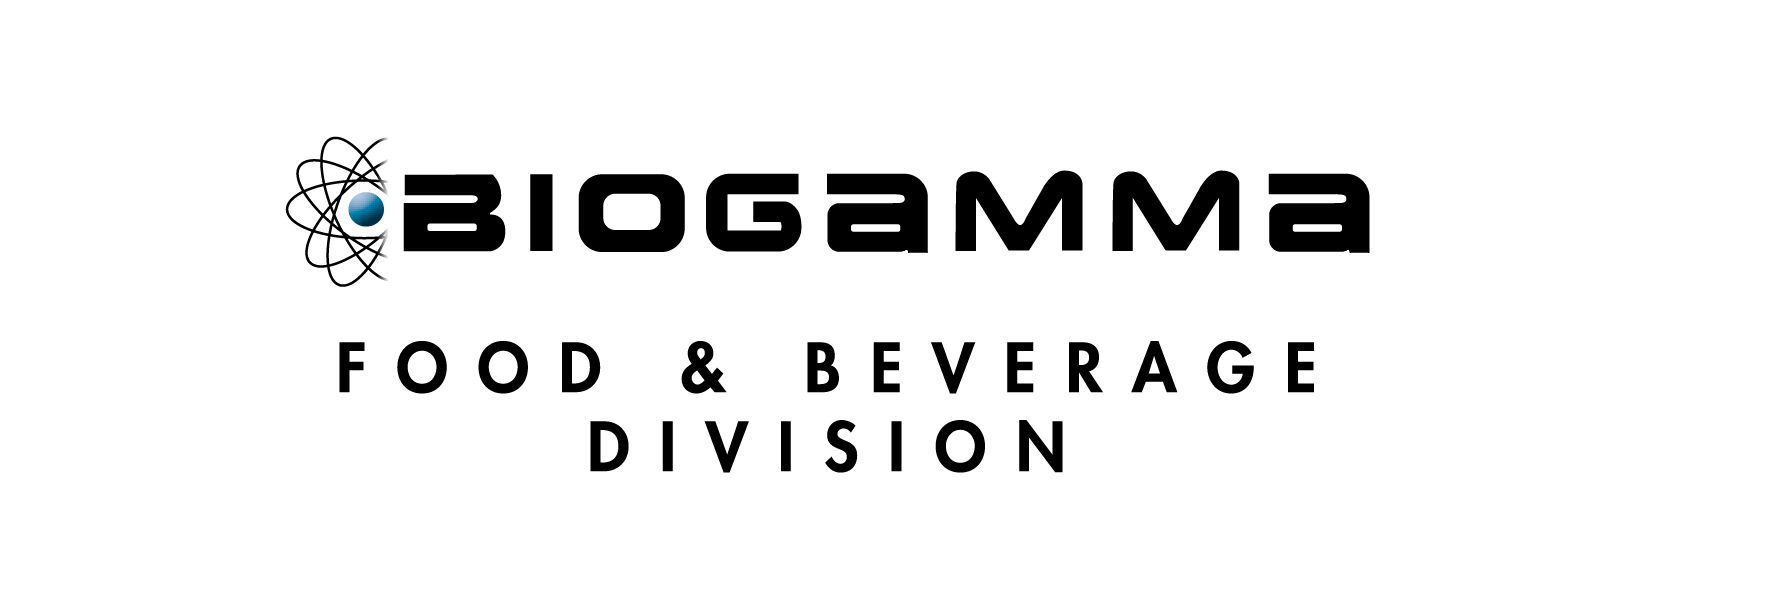 biogamma_foodbeverage